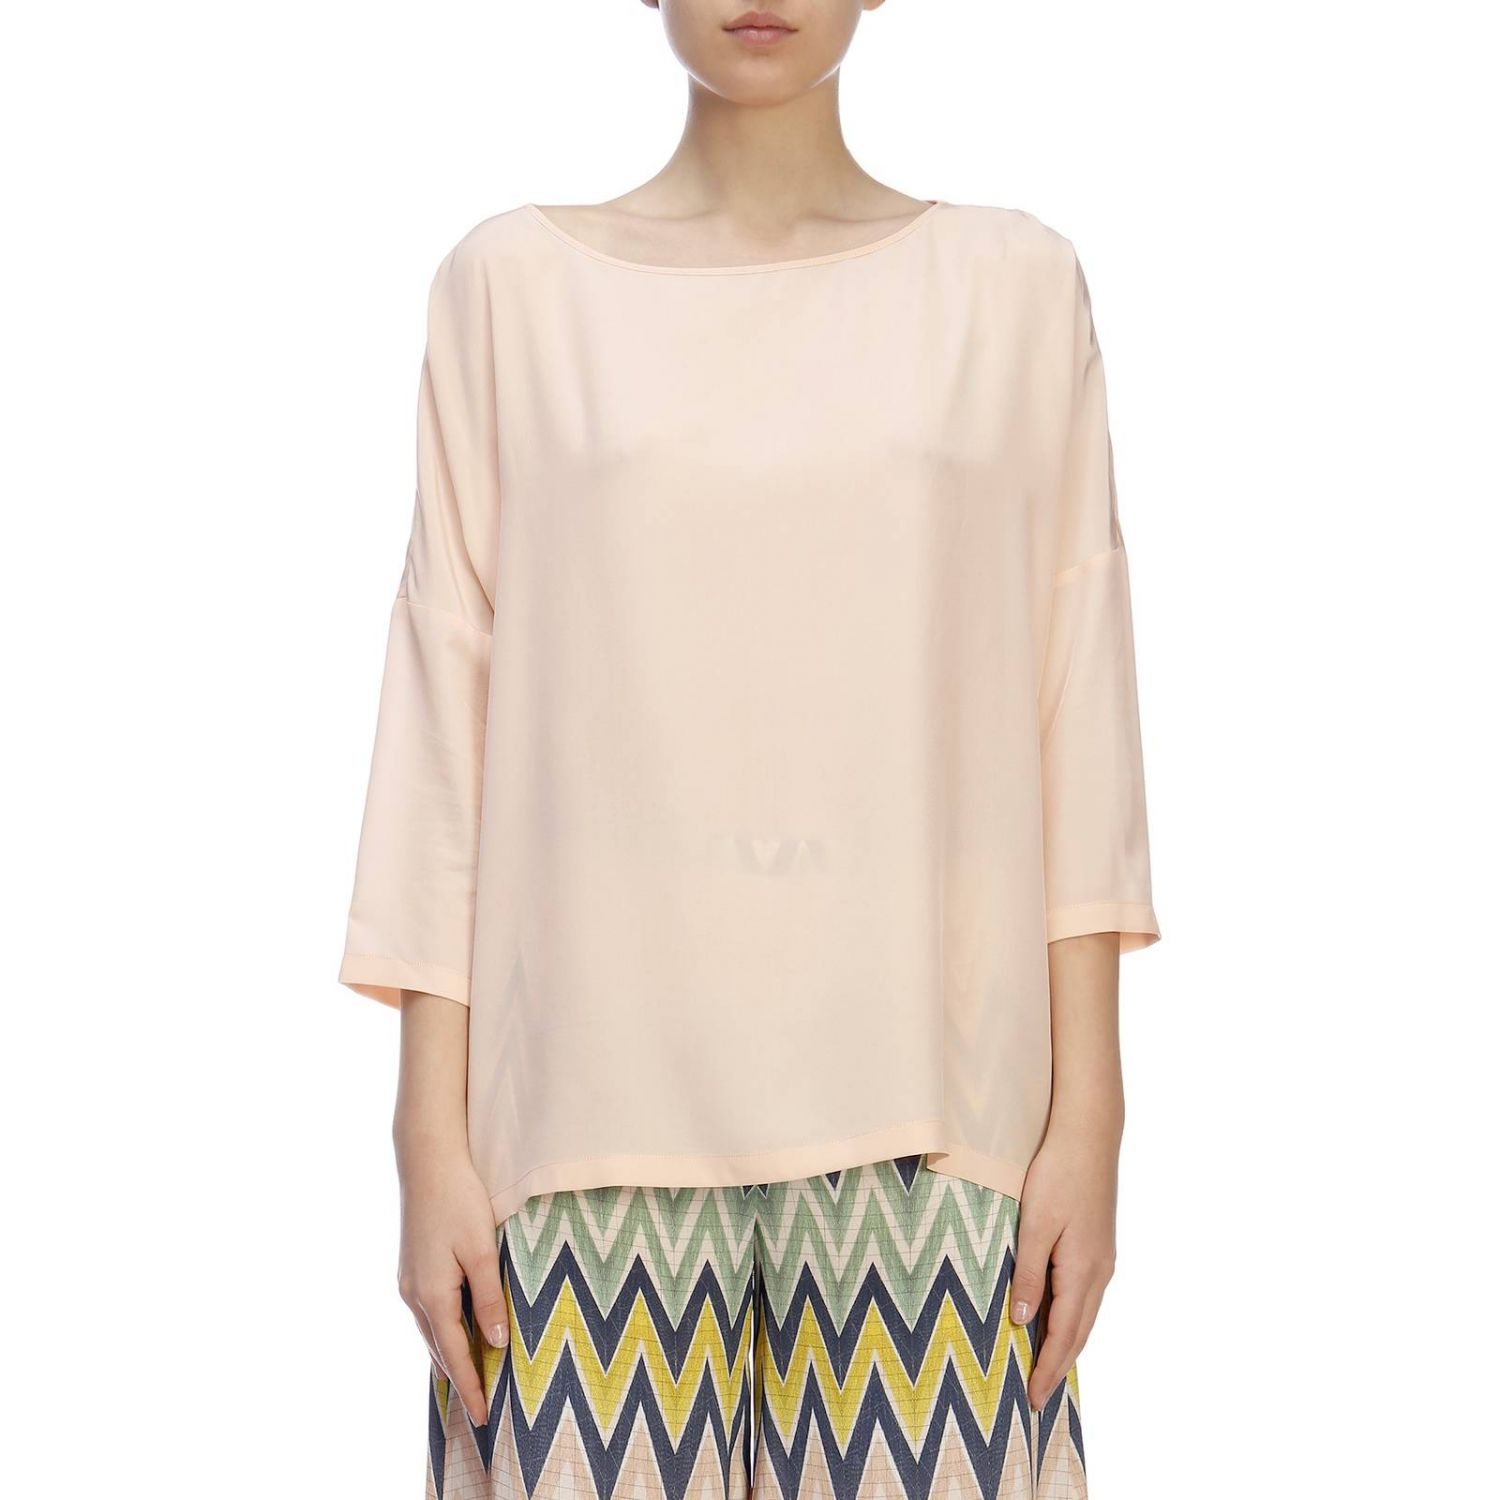 Top mujer M Missoni rosa pálido 1